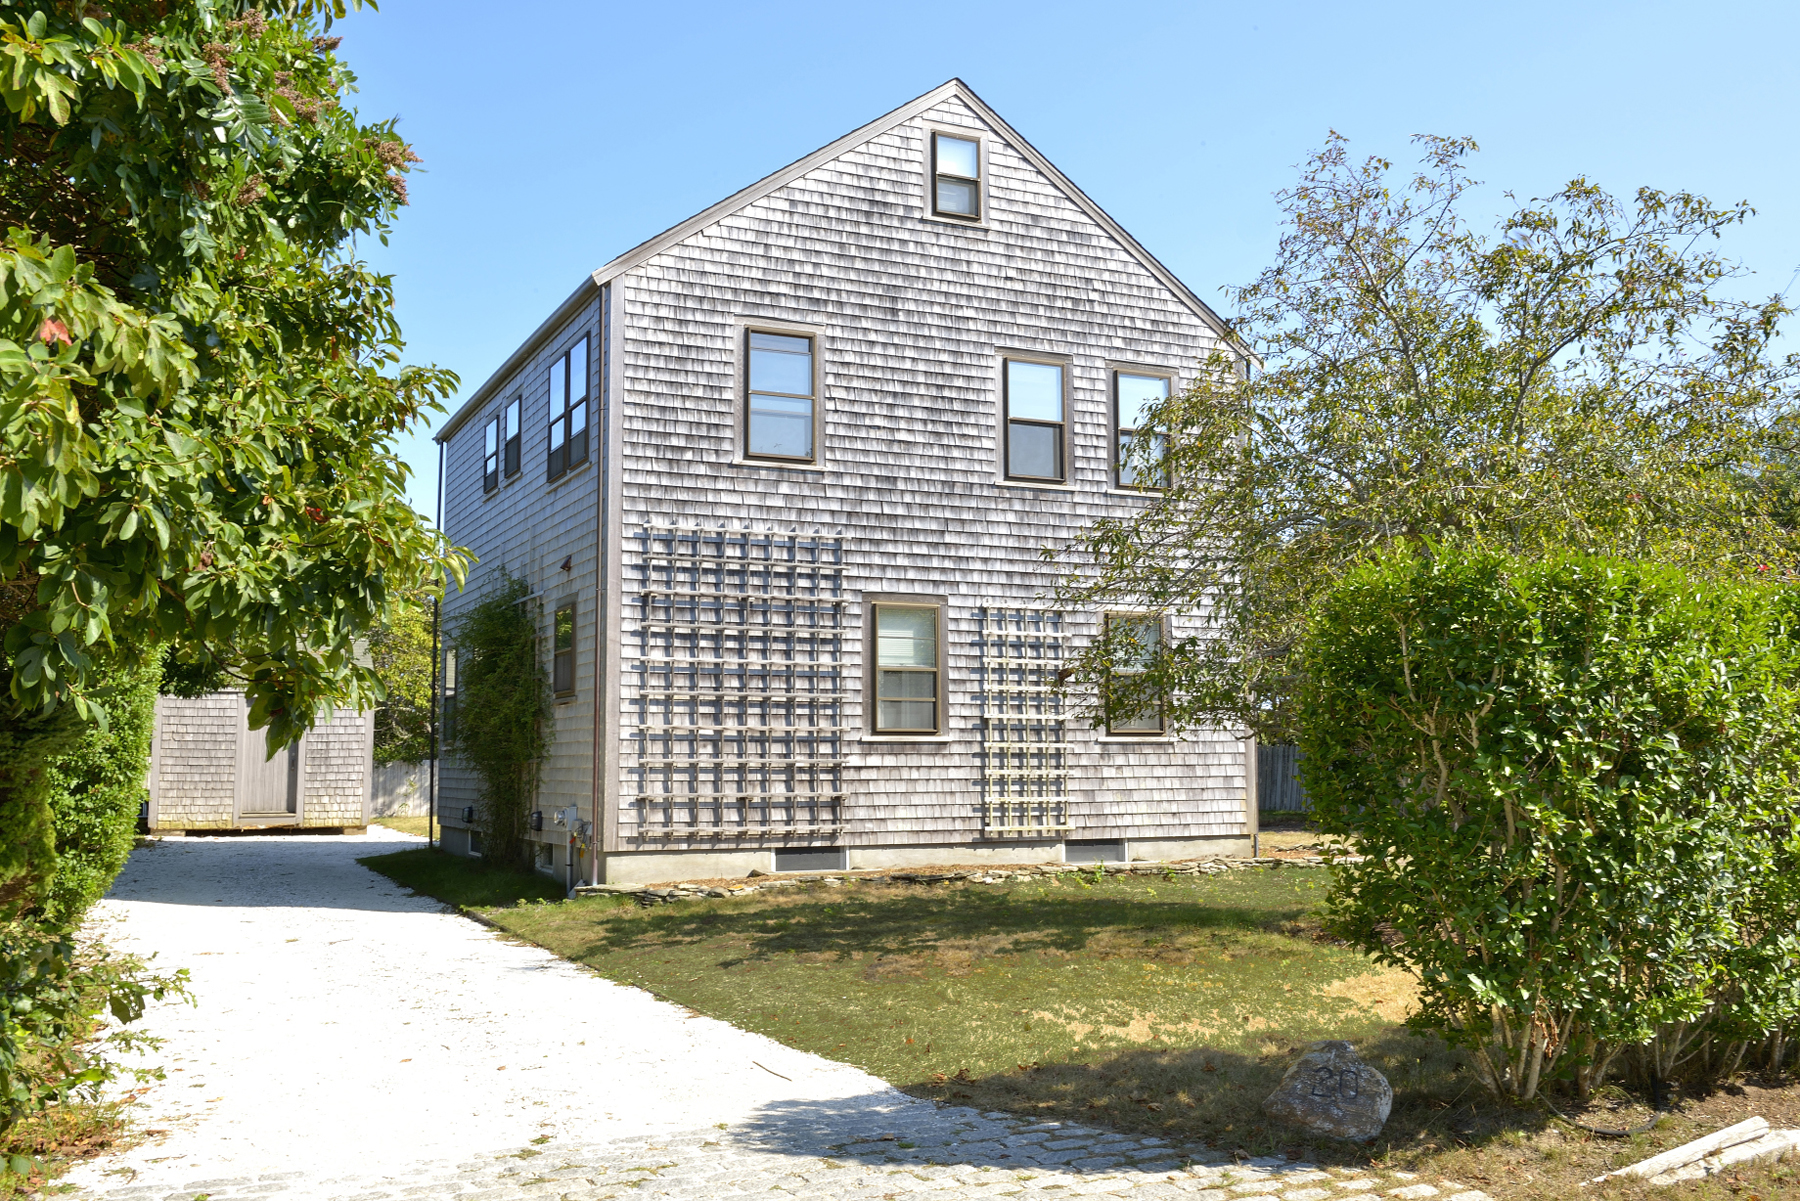 Single Family Home for Sale at Wonderful and Unique Opportunity 20 Arlington Avenue Nantucket, Massachusetts 02554 United States